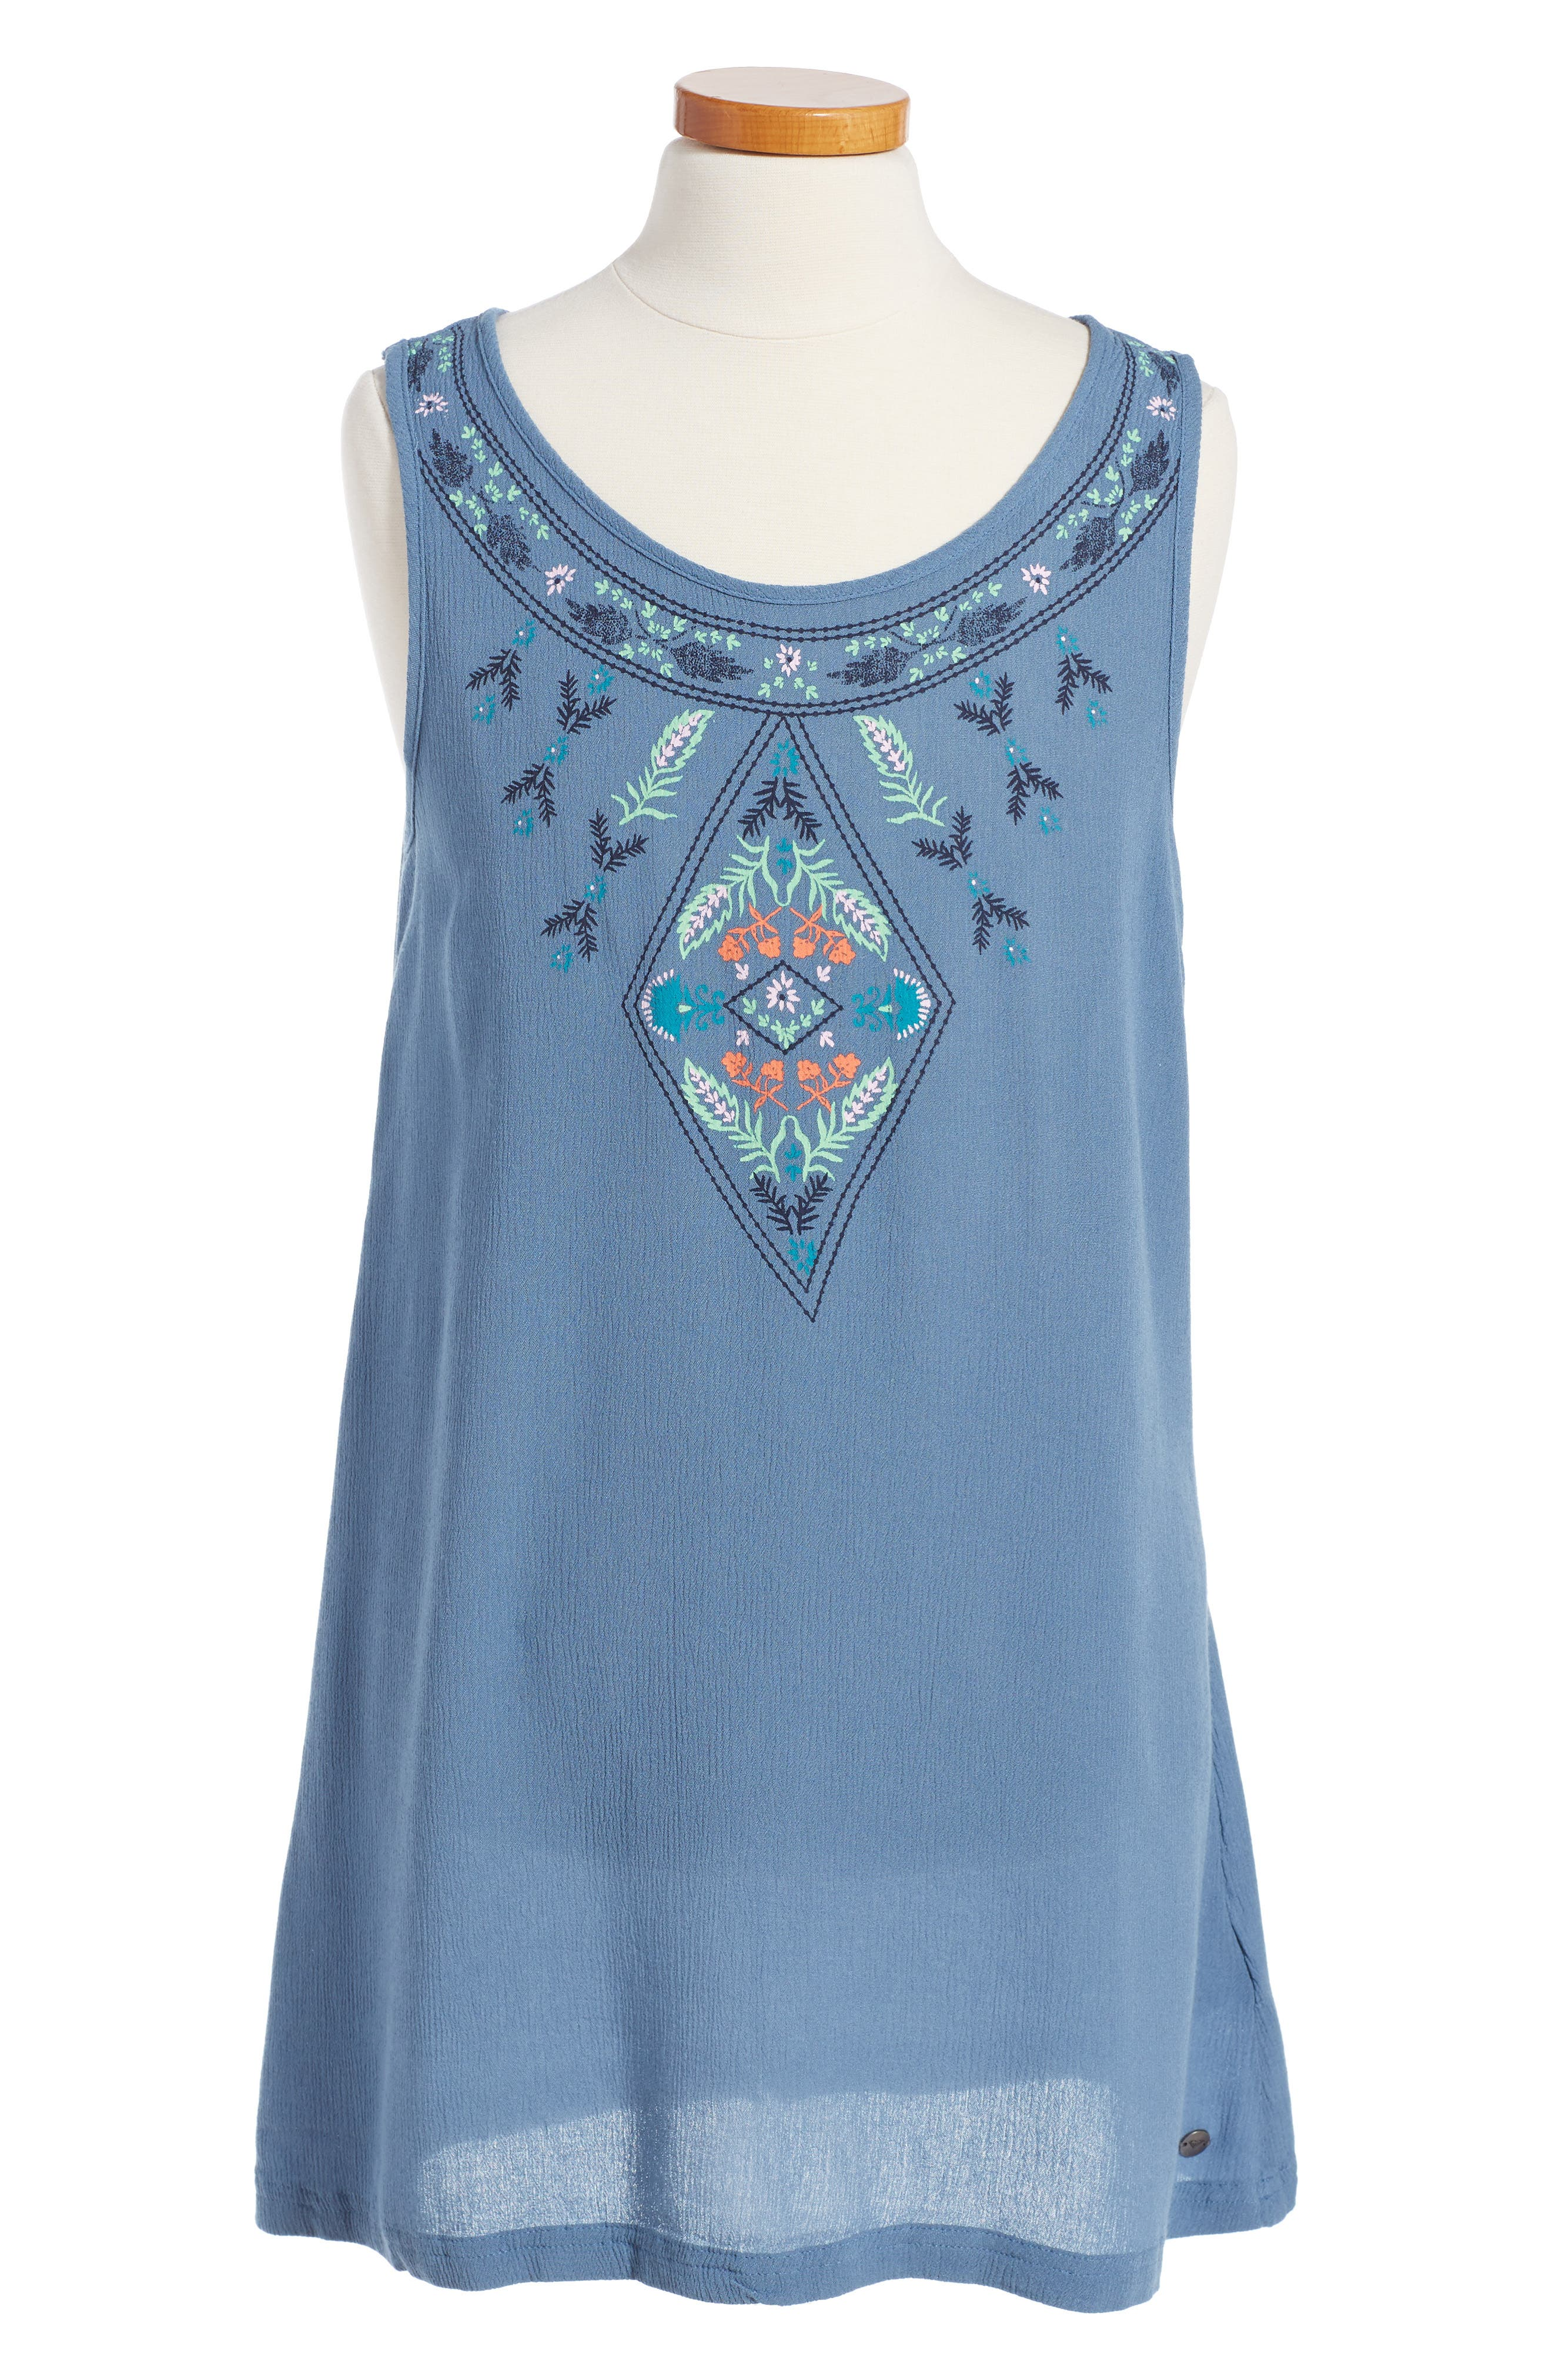 Everyone on a Run Embroidered Dress,                         Main,                         color, Captains Blue